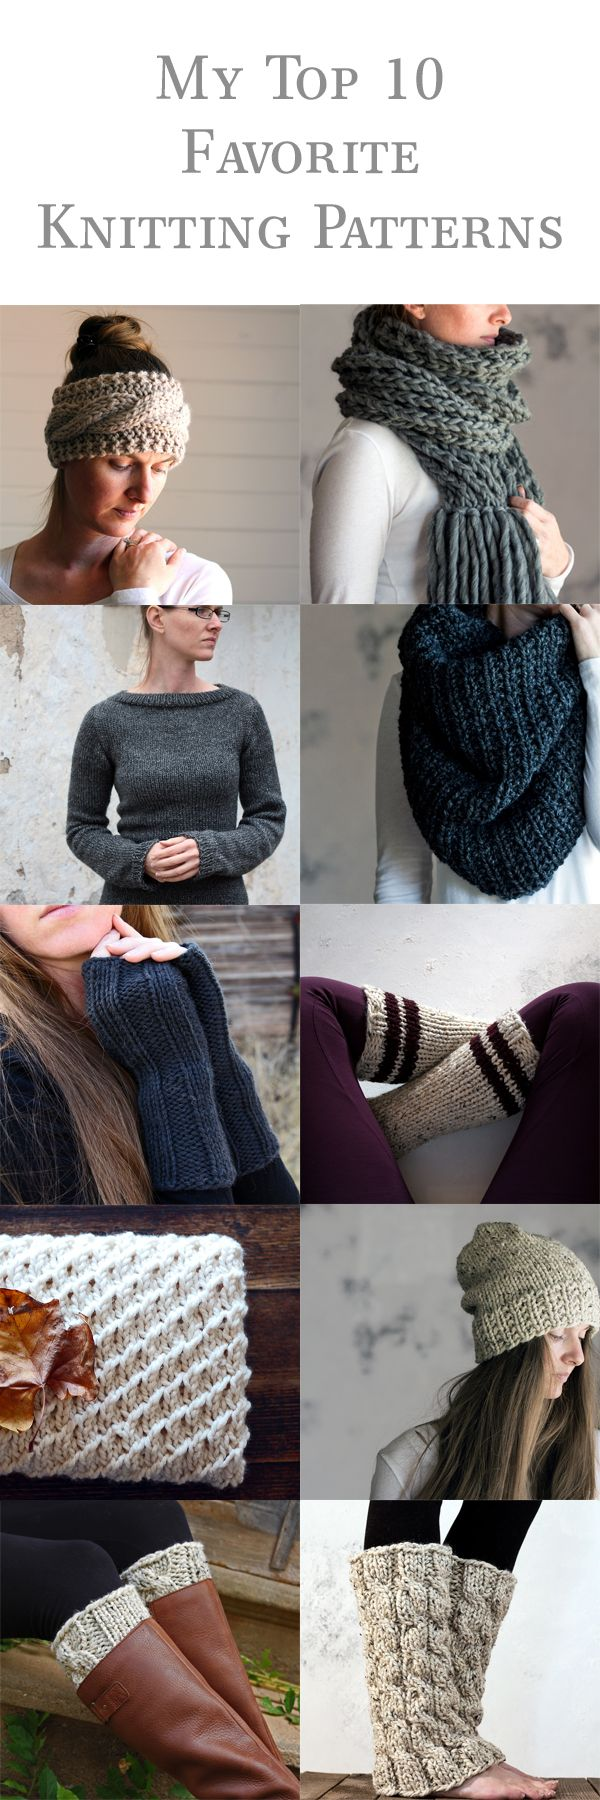 My favorite knitting patterns for 2016!